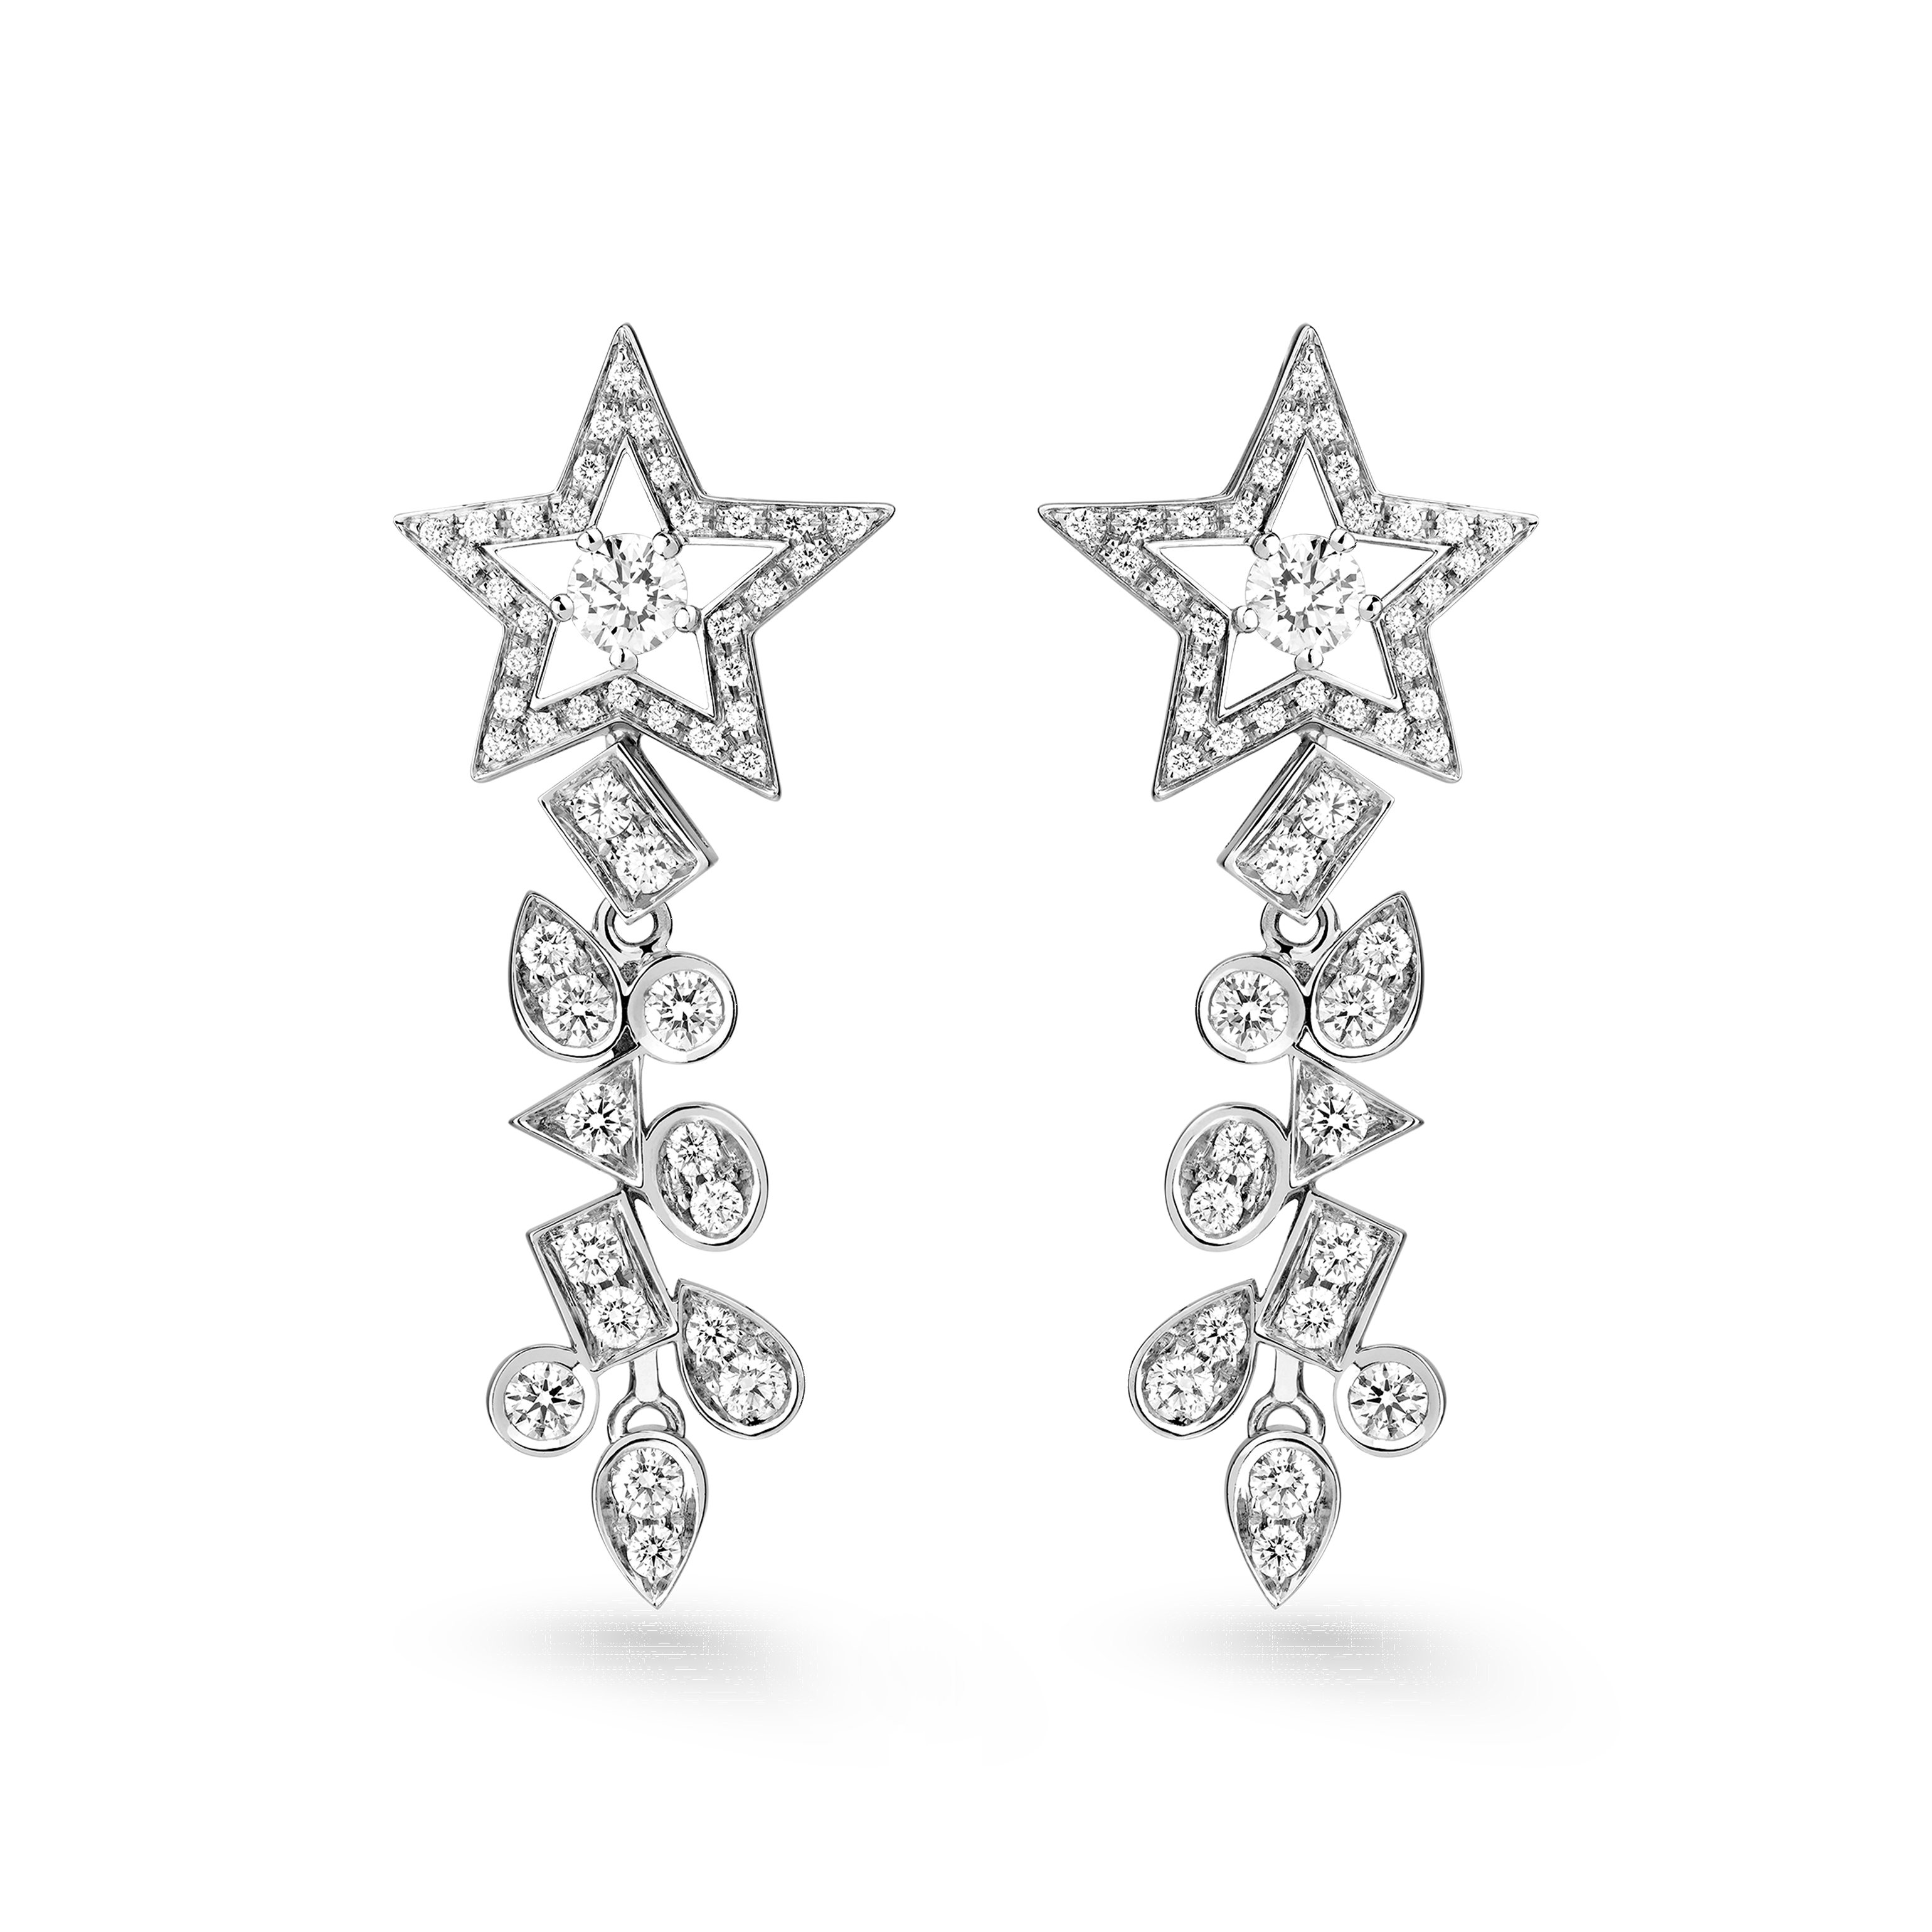 Étoile Filante earrings - 18K white gold, diamonds - CHANEL - Default view - see standard sized version